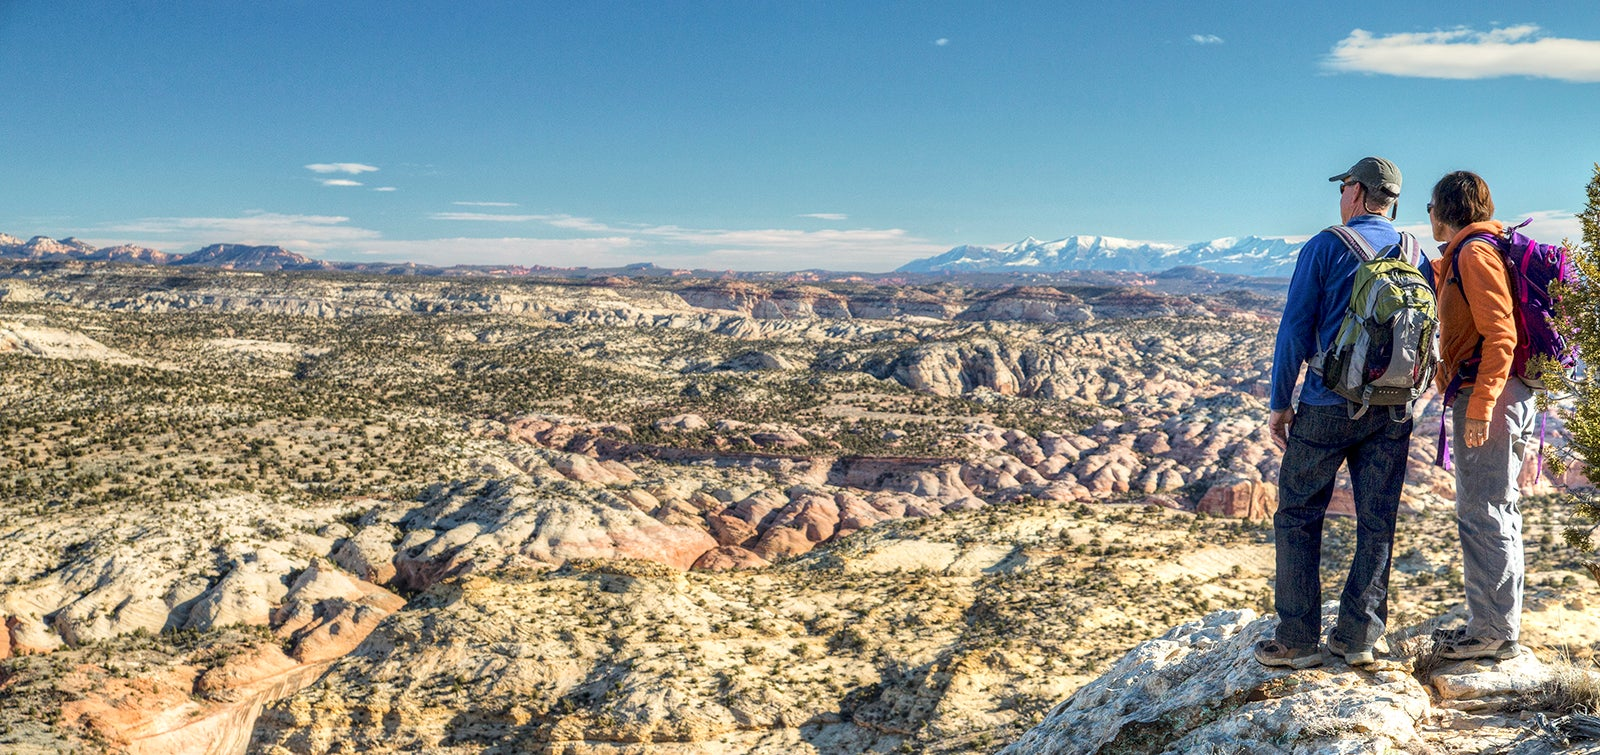 overlooking national monuments that mike lee wants to deregulate